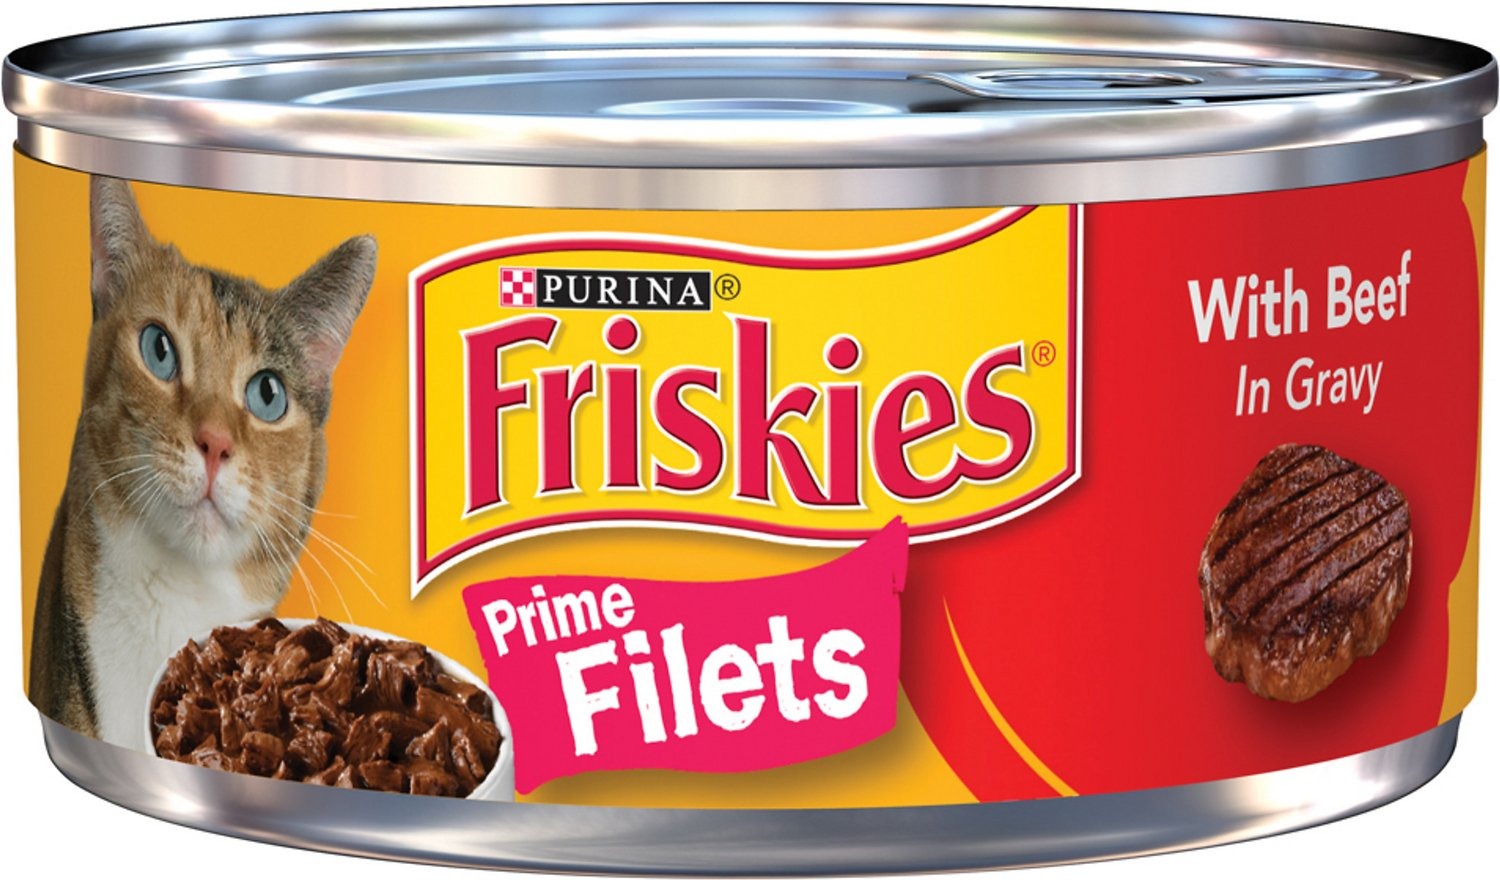 Friskies Prime Filets with Beef in Gravy Canned Cat Food,  5.5-oz